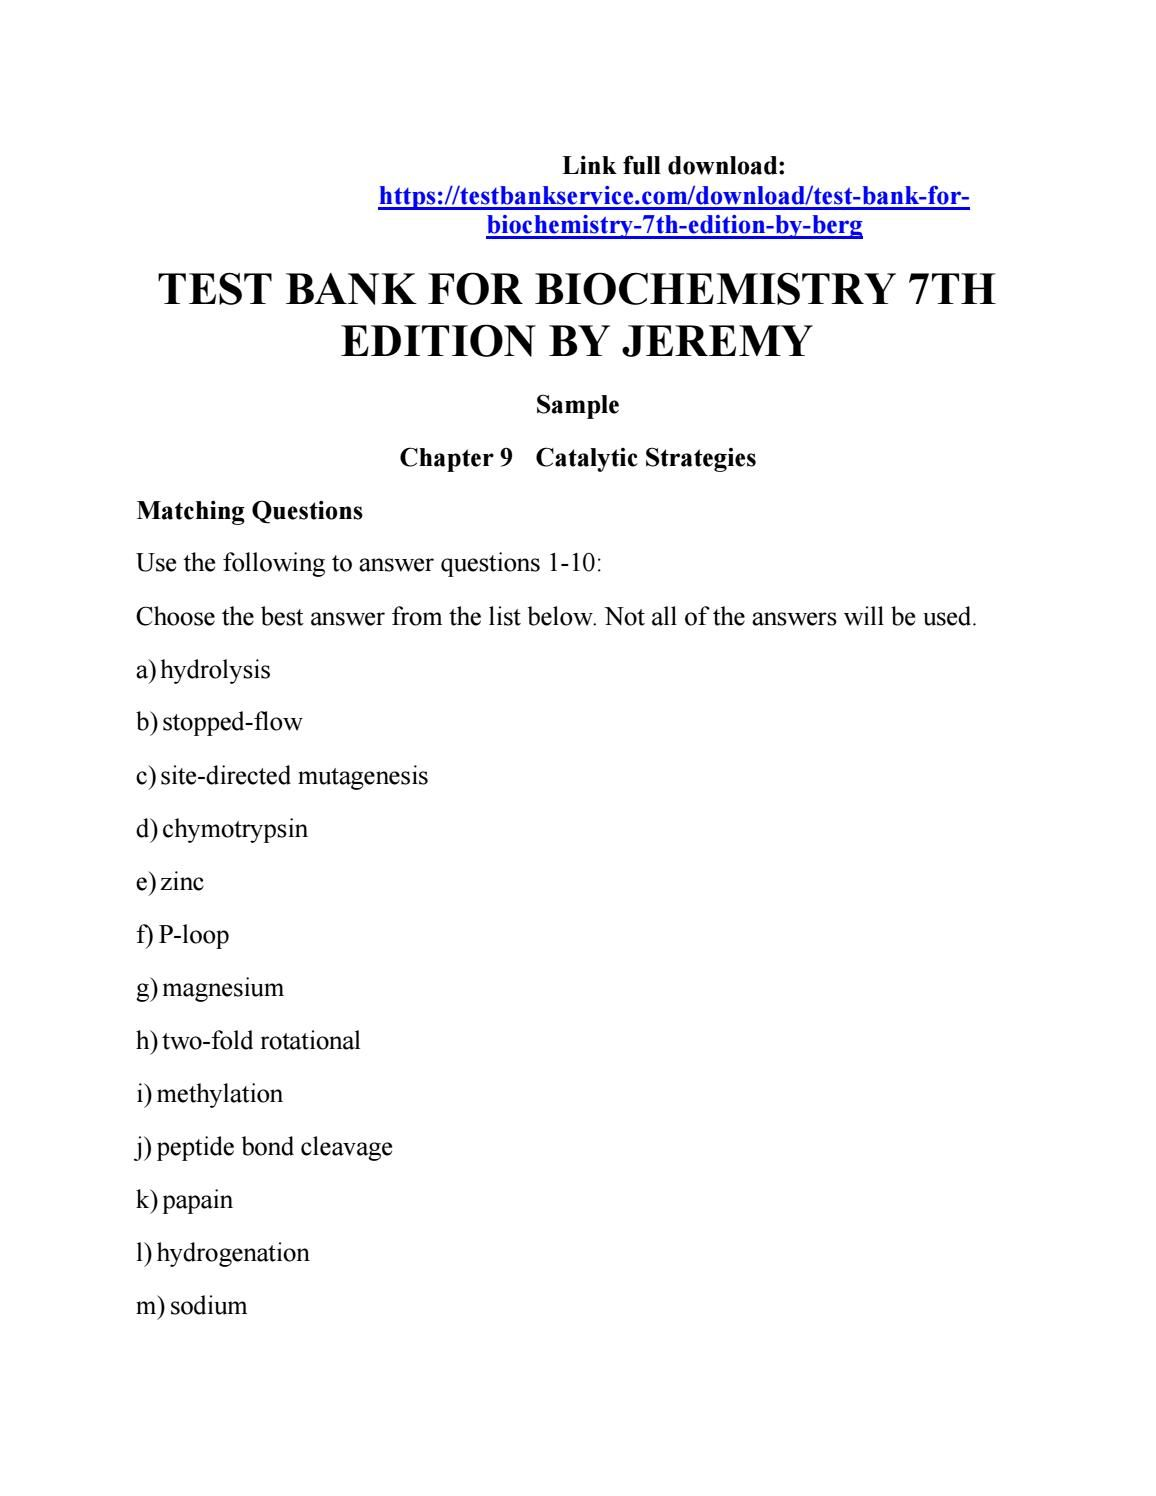 Test bank for biochemistry 7th edition by berg